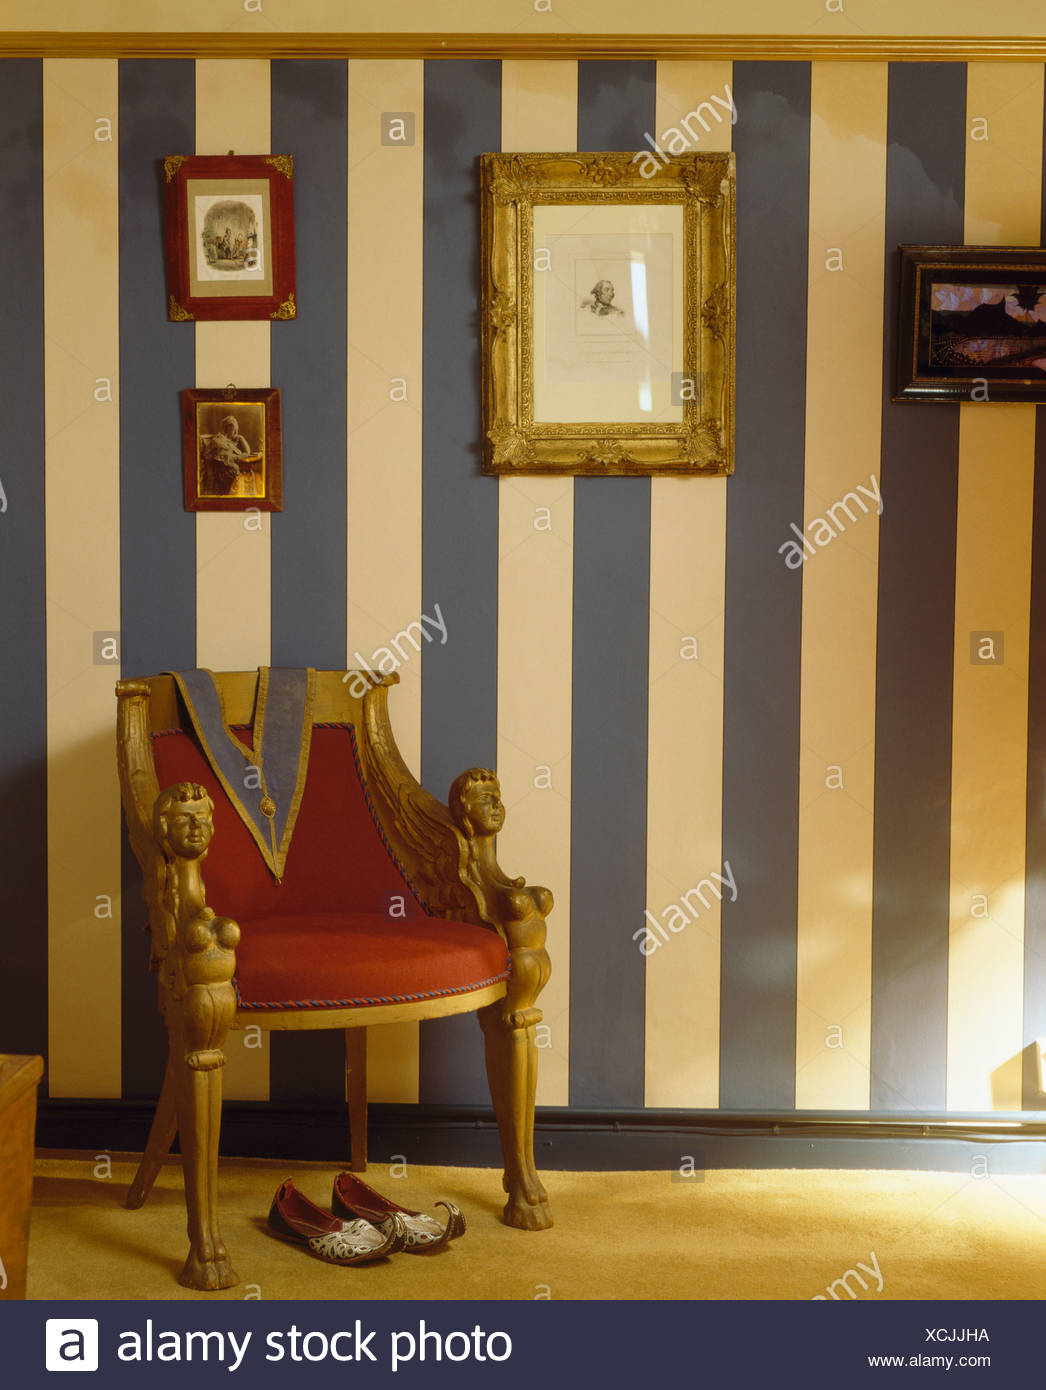 Pareti Pitturate A Fasce gilt chair immagini & gilt chair fotos stock - alamy